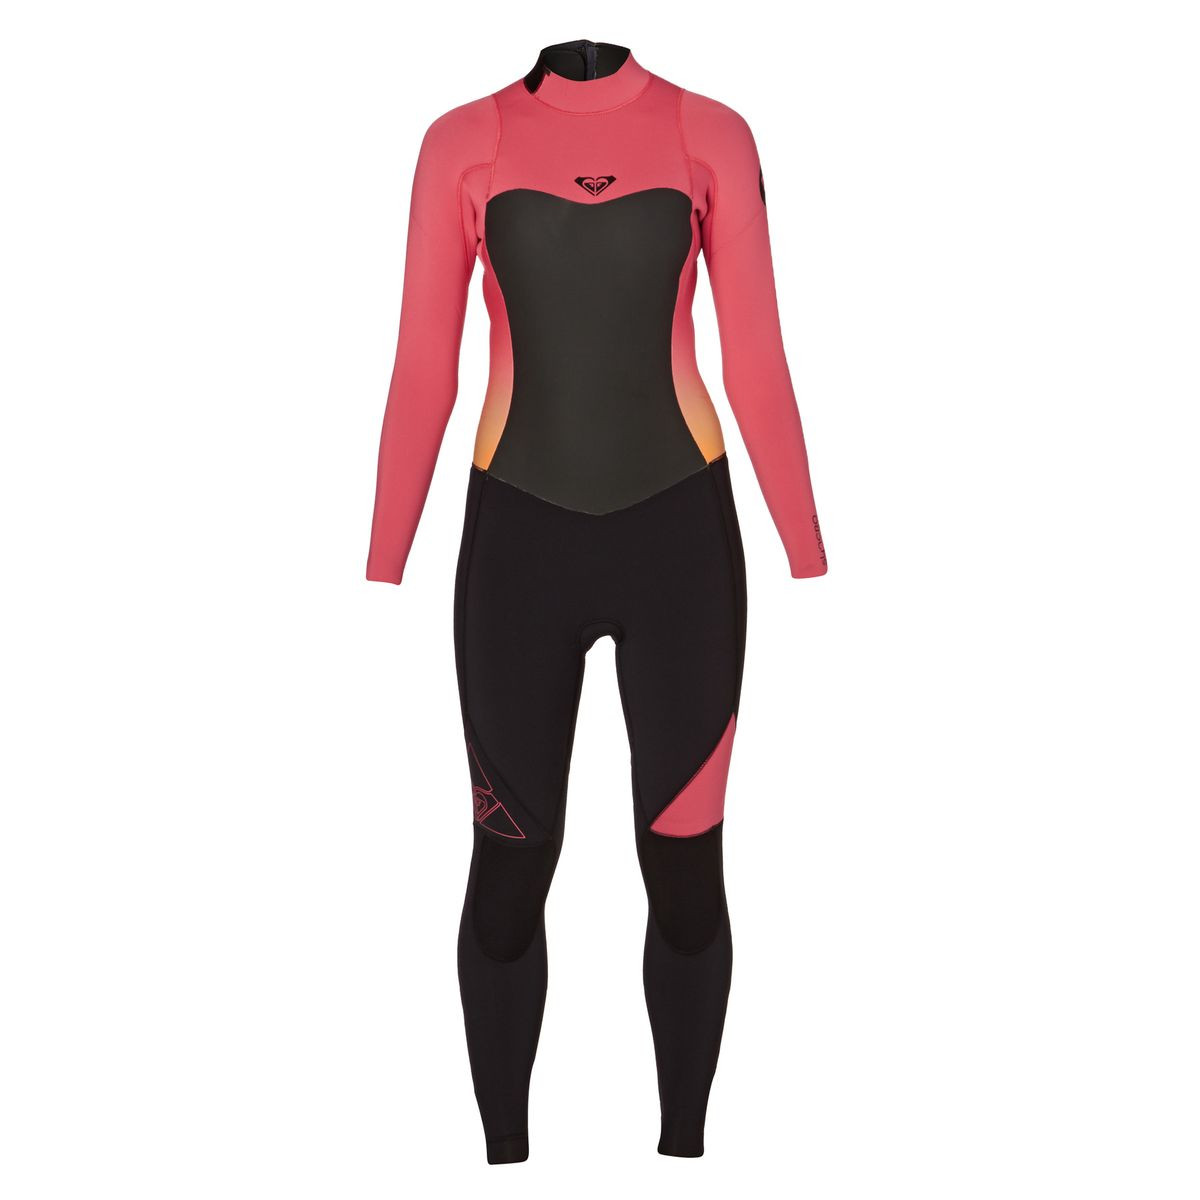 Roxy Womens Syncro 4/3mm 2017 Back Zip Wetsuit - Paradise Pink